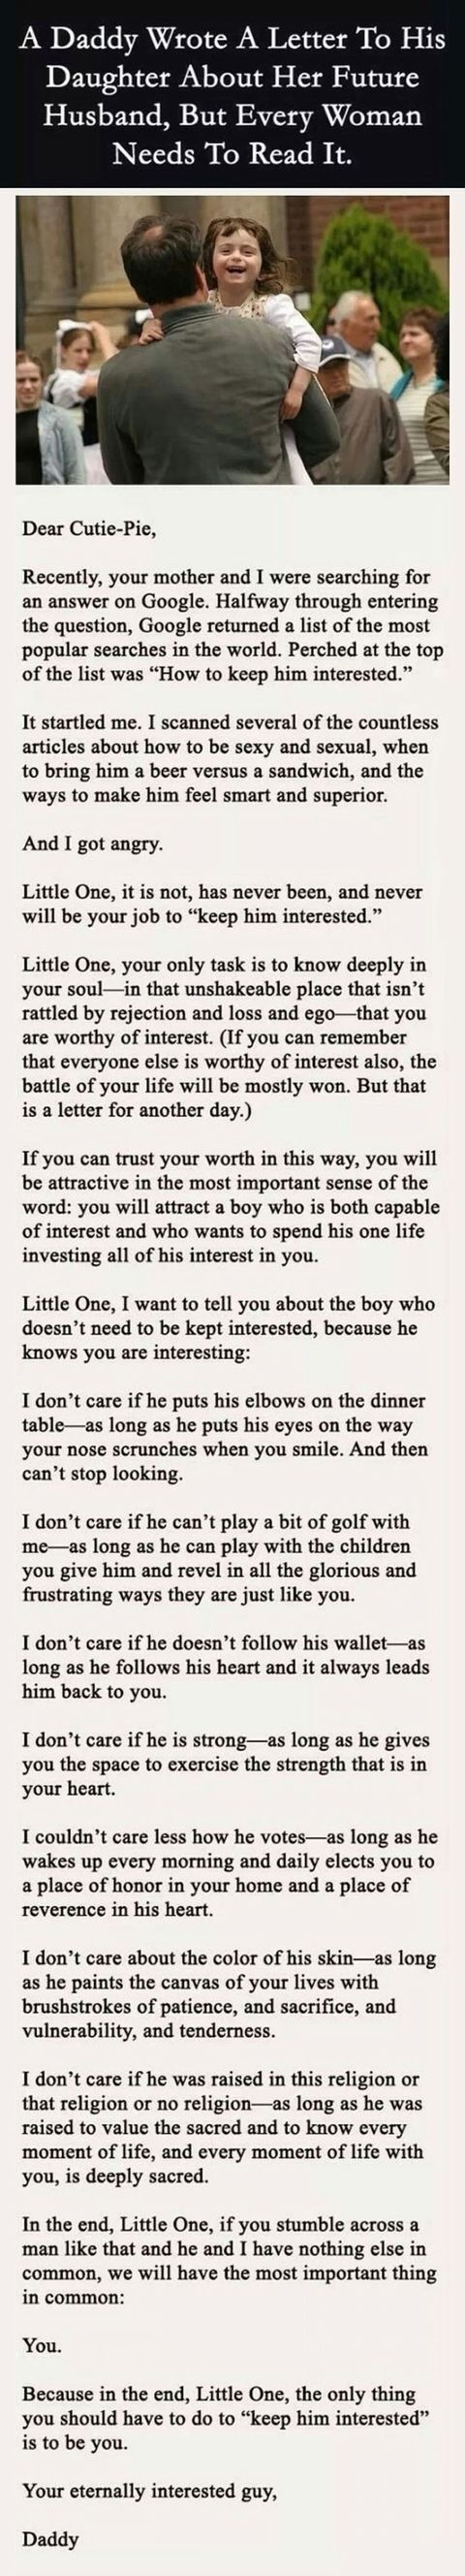 Awesome letter from a father to his daughter